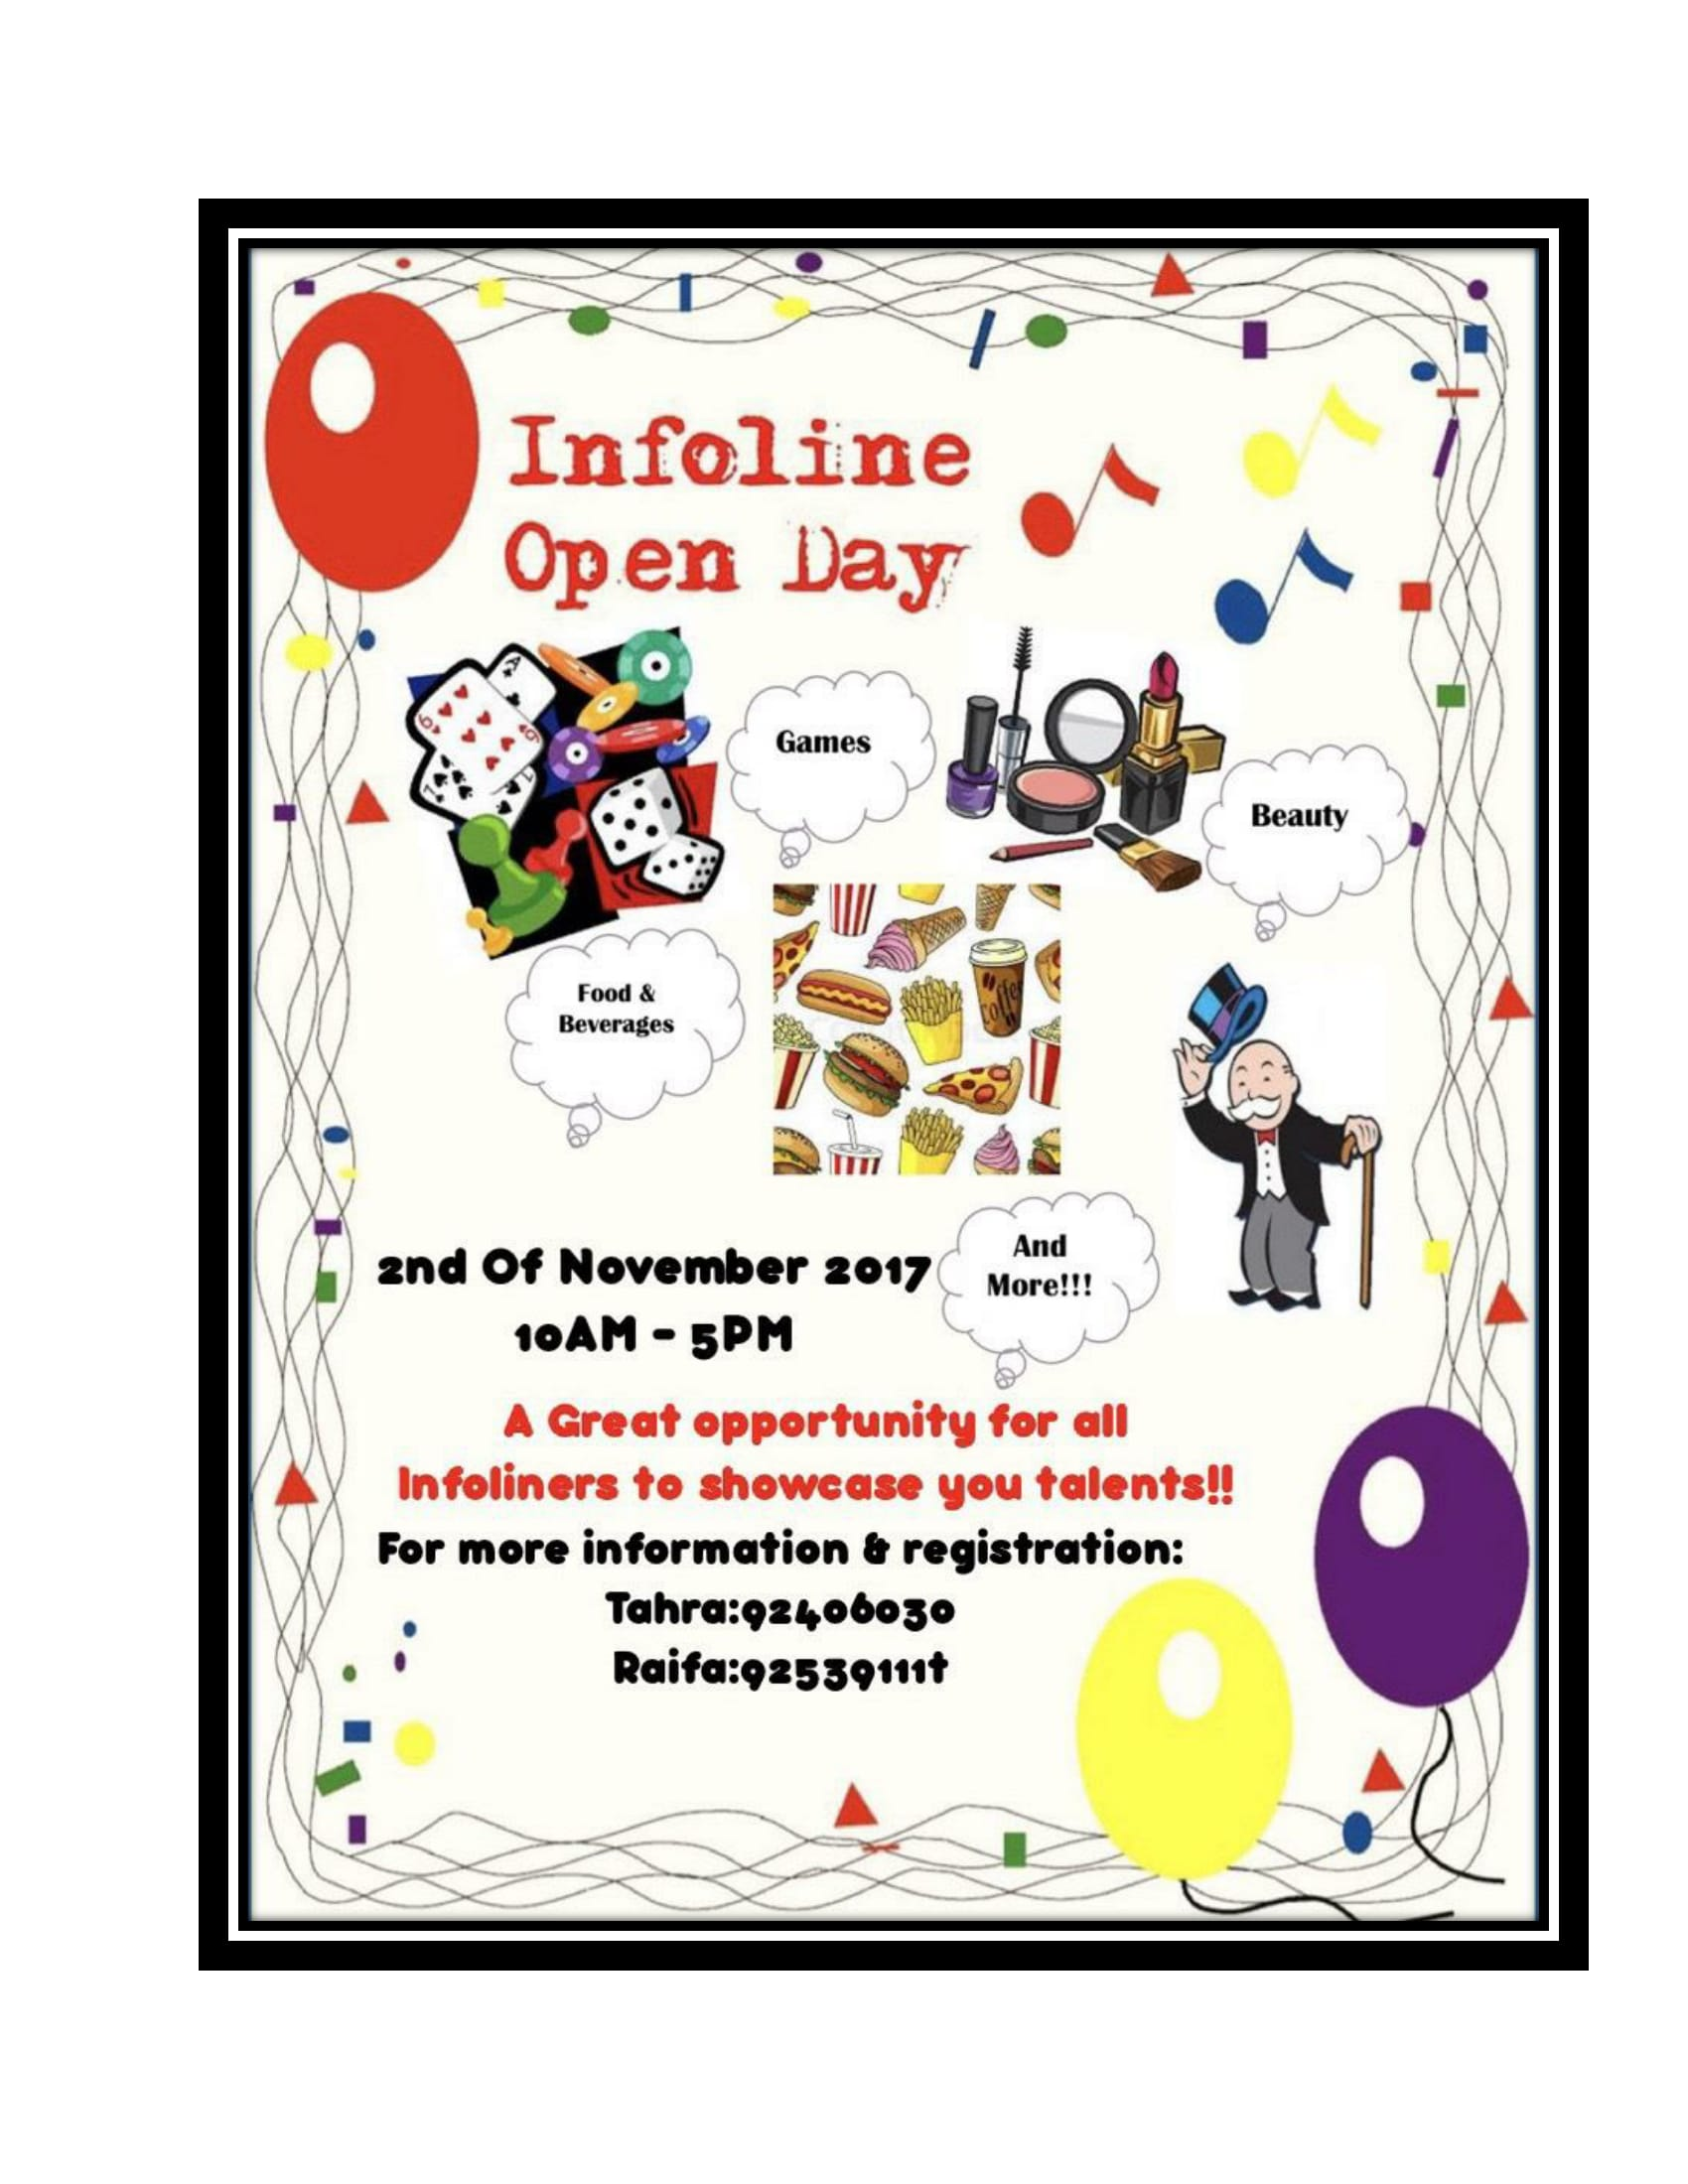 Infoline organises Open Day